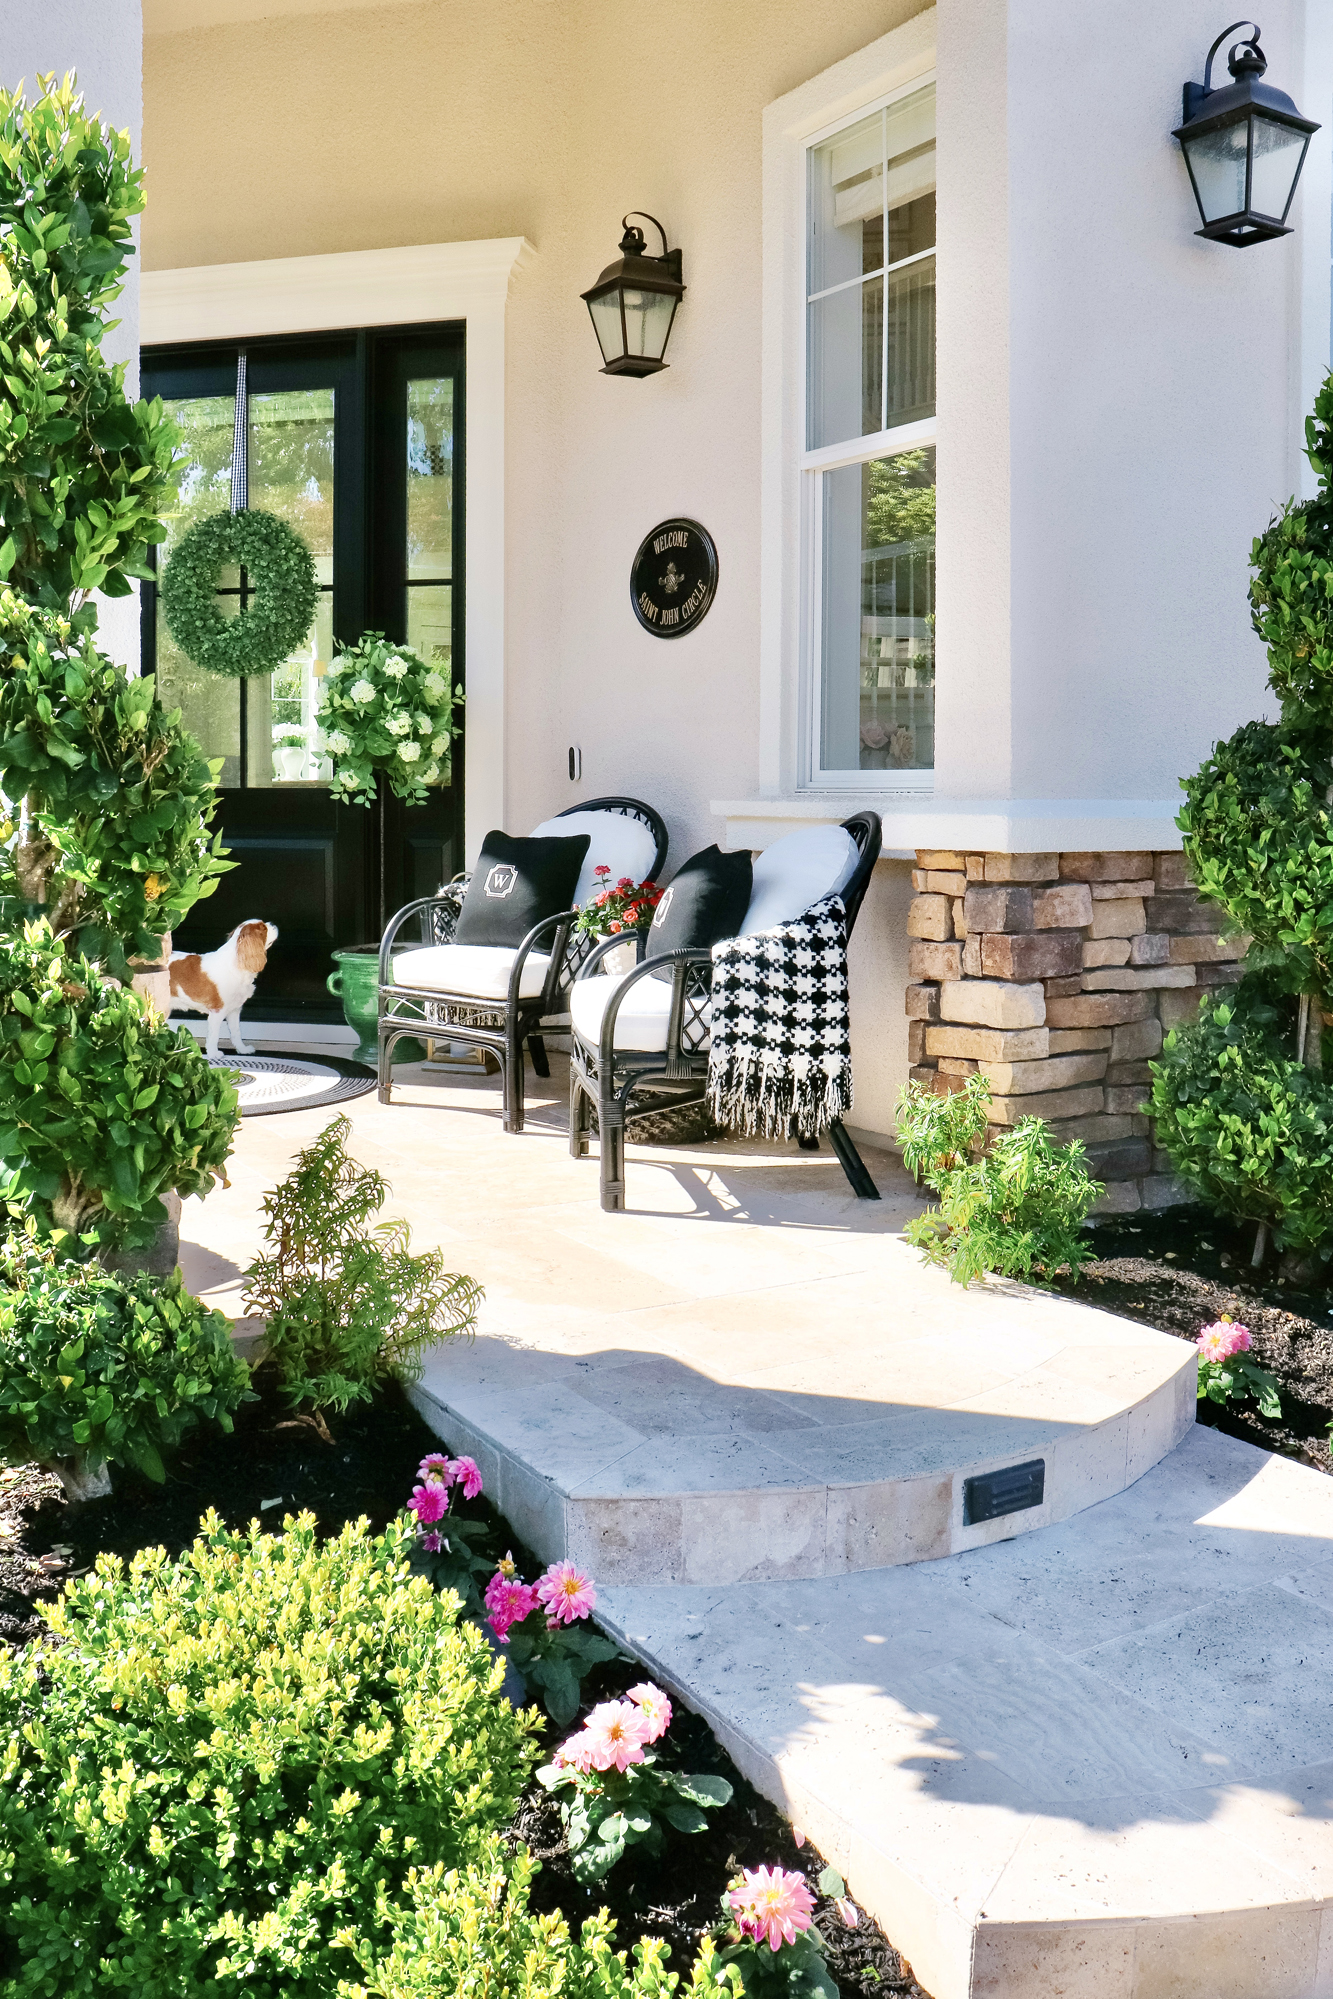 10 Easy & Beautiful Spring Porch Ideas - Lots of decor ideas and easy options to update and add curb appeal to your home. Many links and sources!